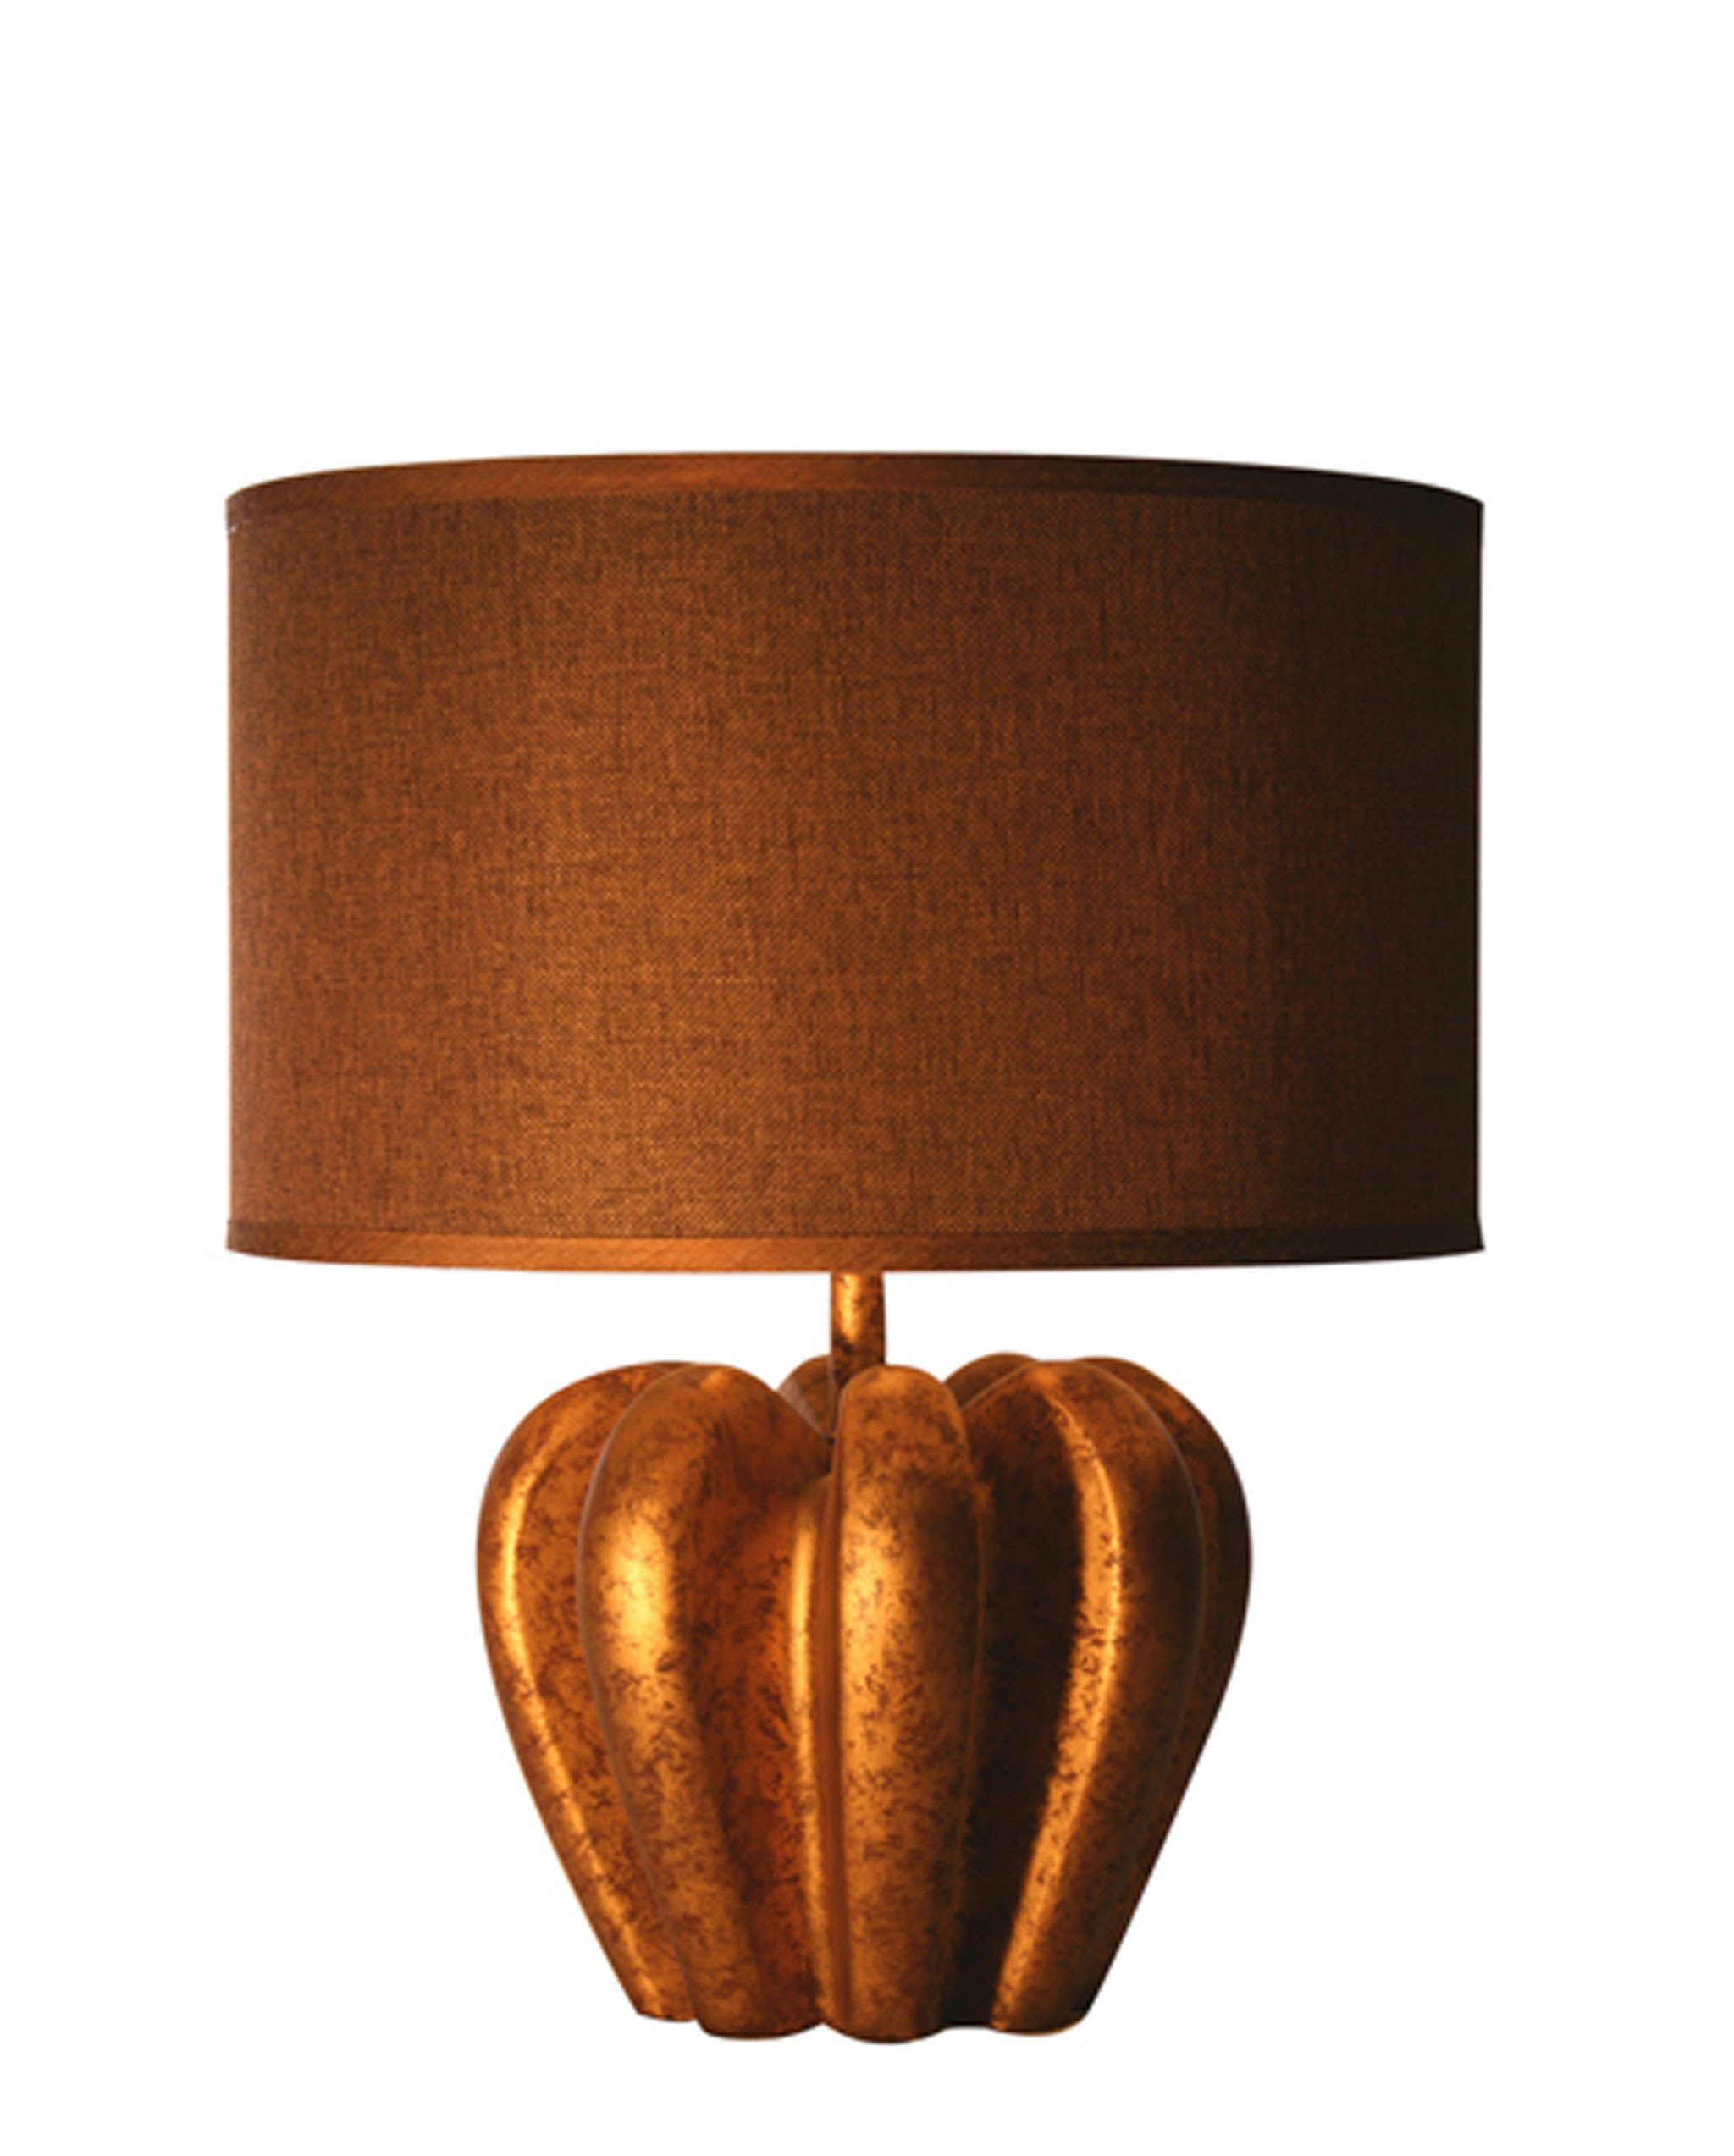 TABLE LAMP KH-1-329 GOLDEN STD HOMDECACC